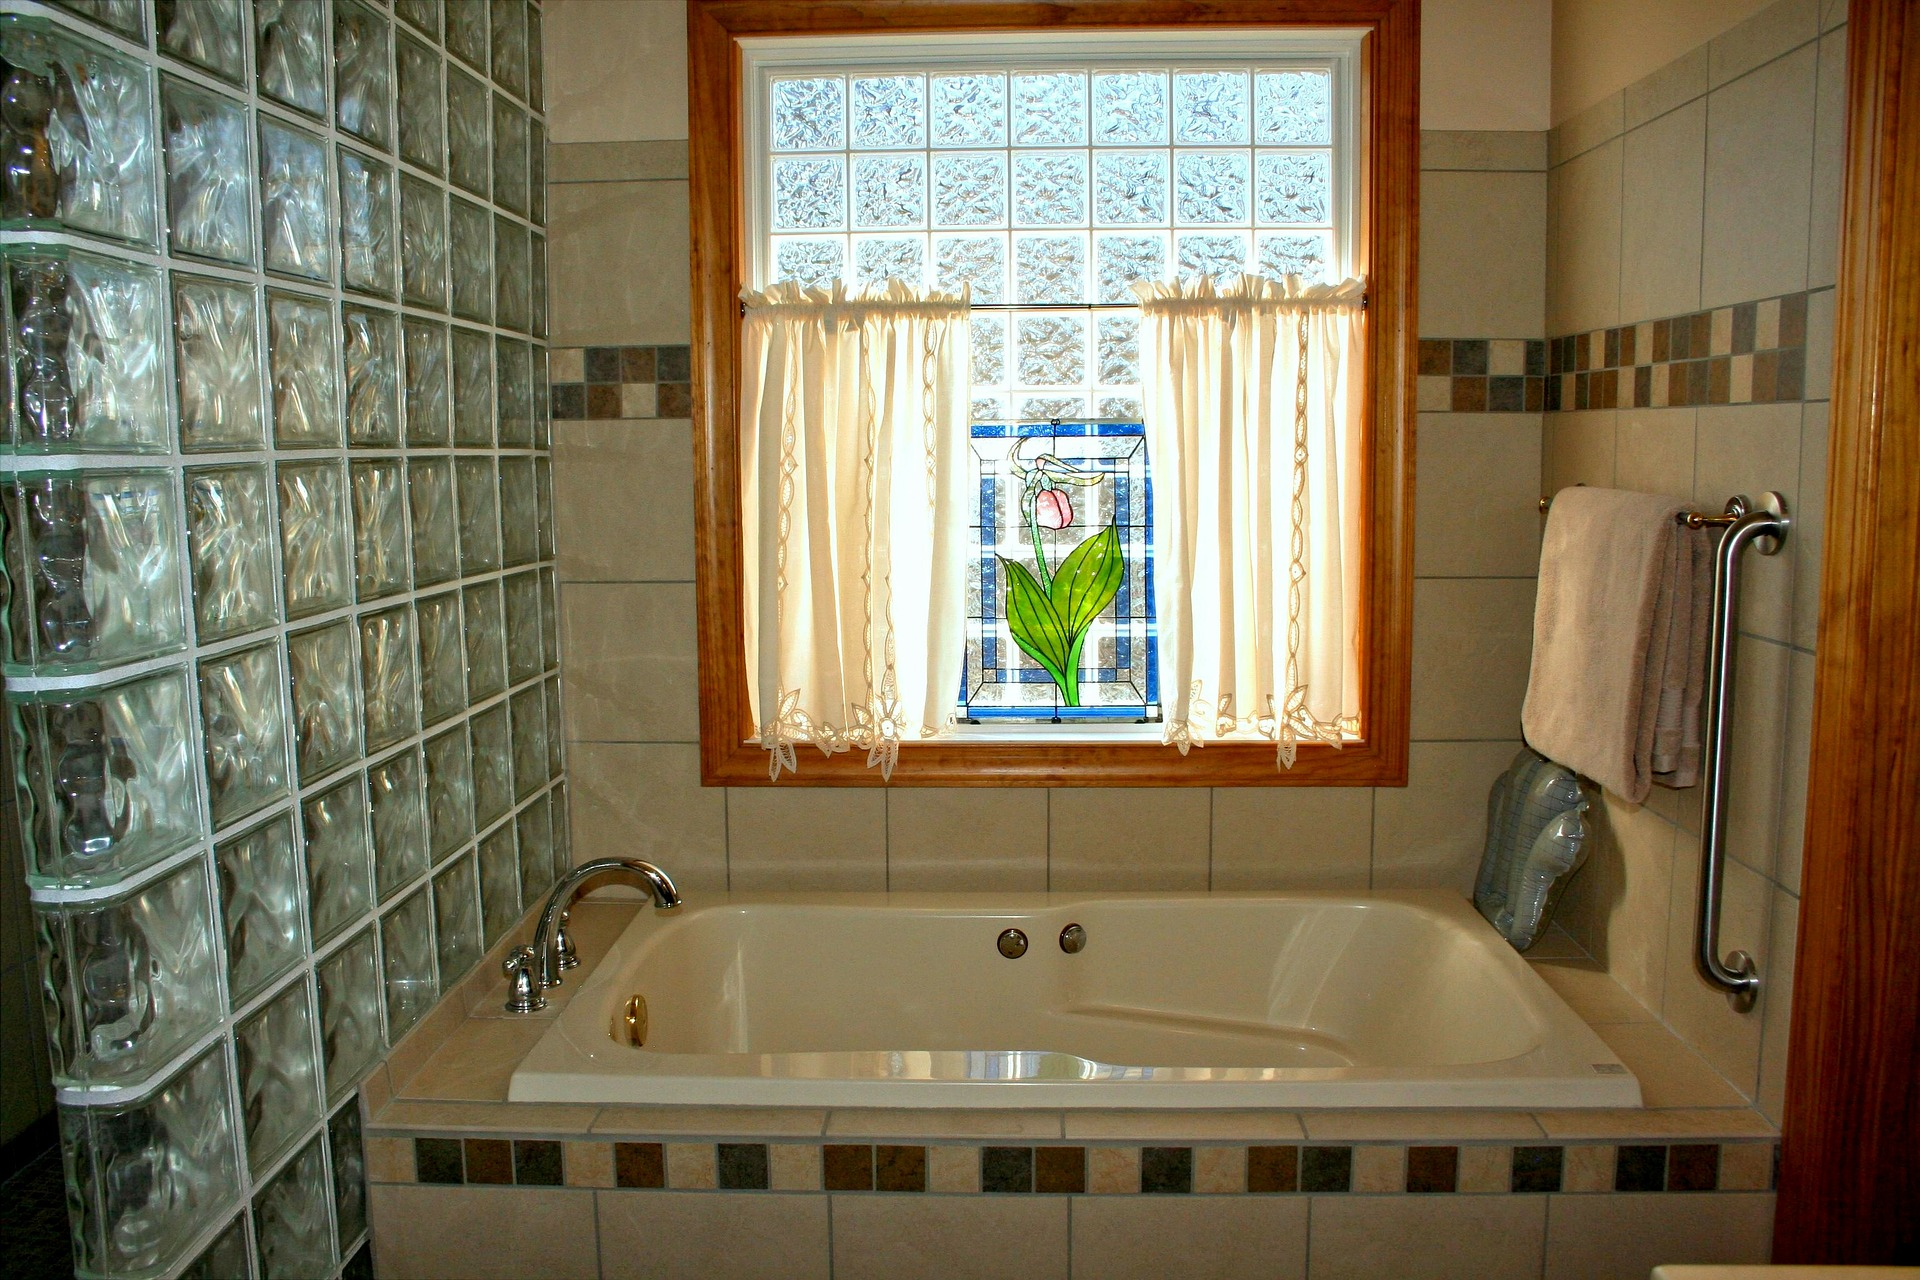 bathtub-54587_1920.jpg